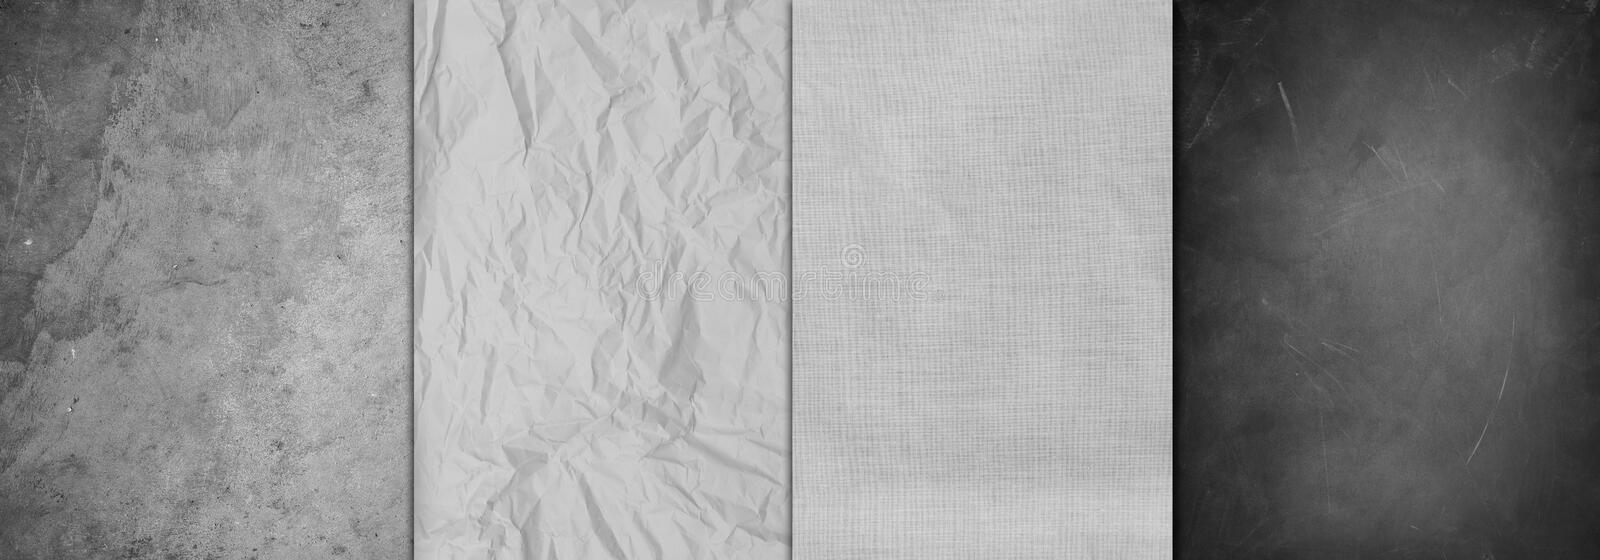 Four textures background stock image